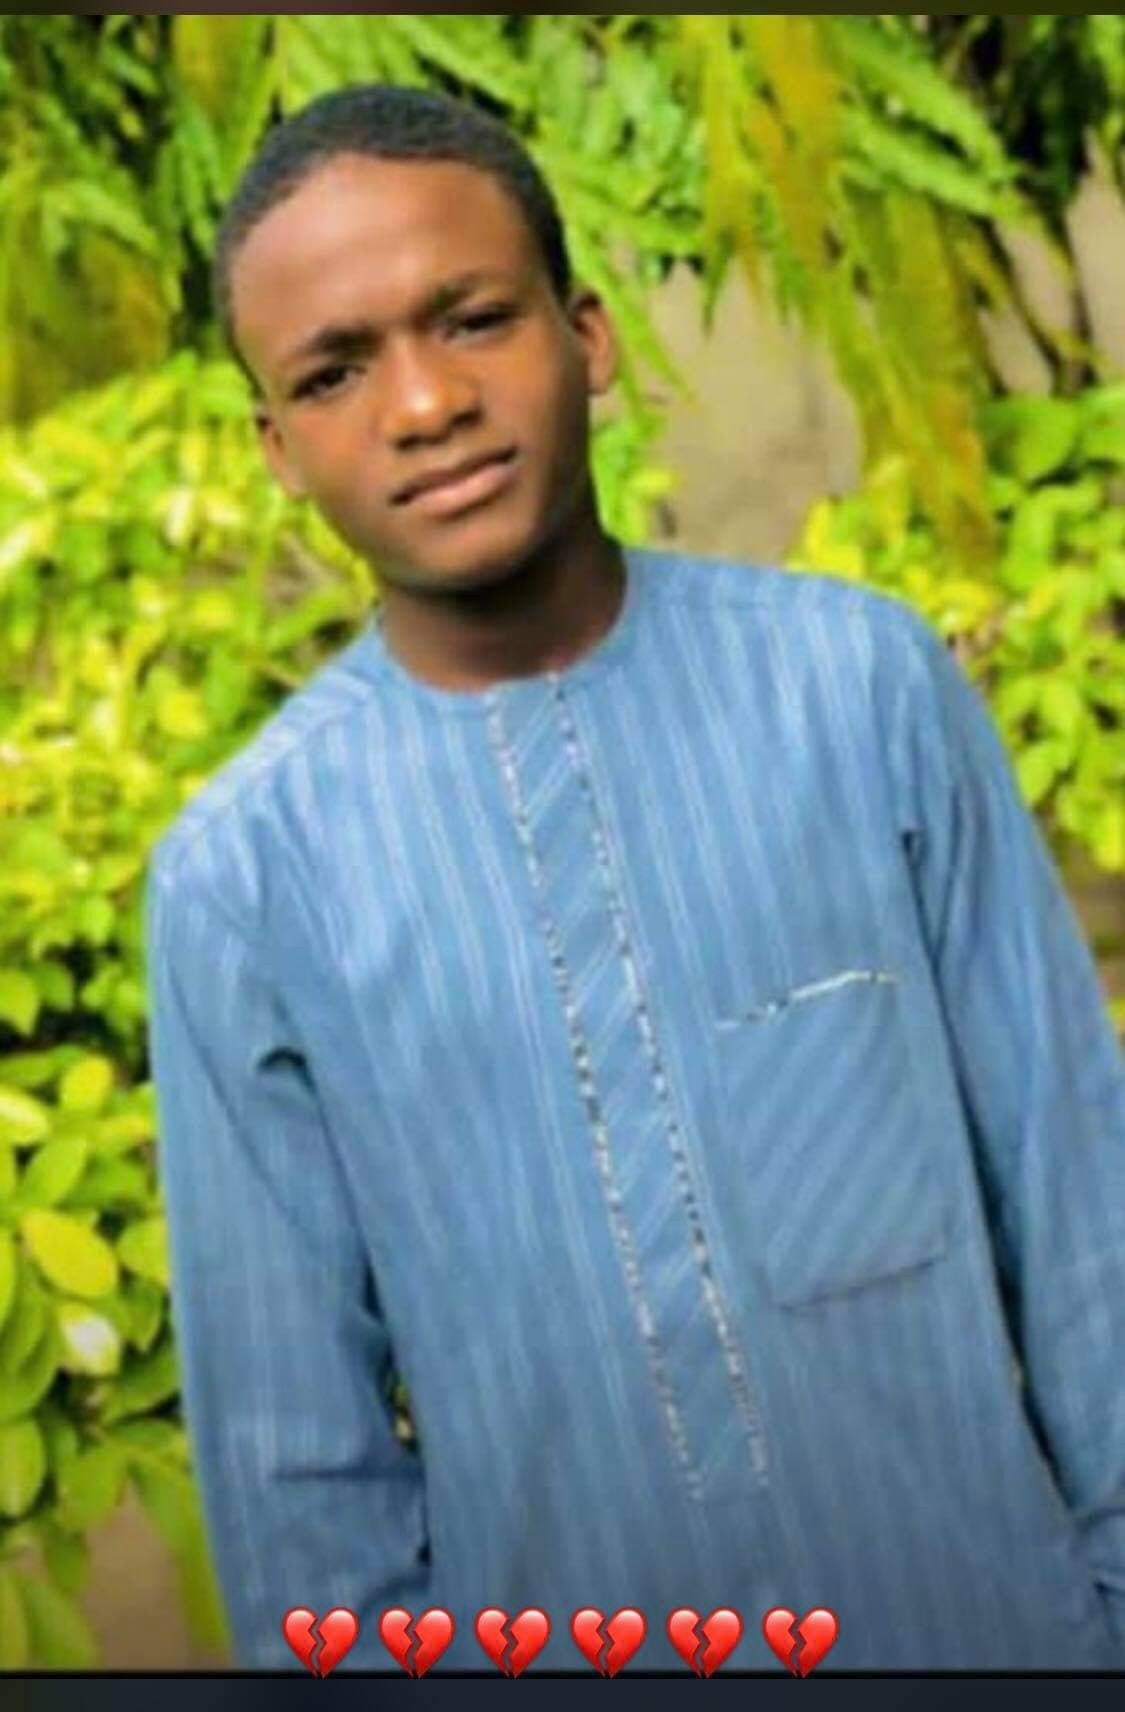 13-year-old Abuja student dies after teacher allegedly punished him for failing to complete his assignment